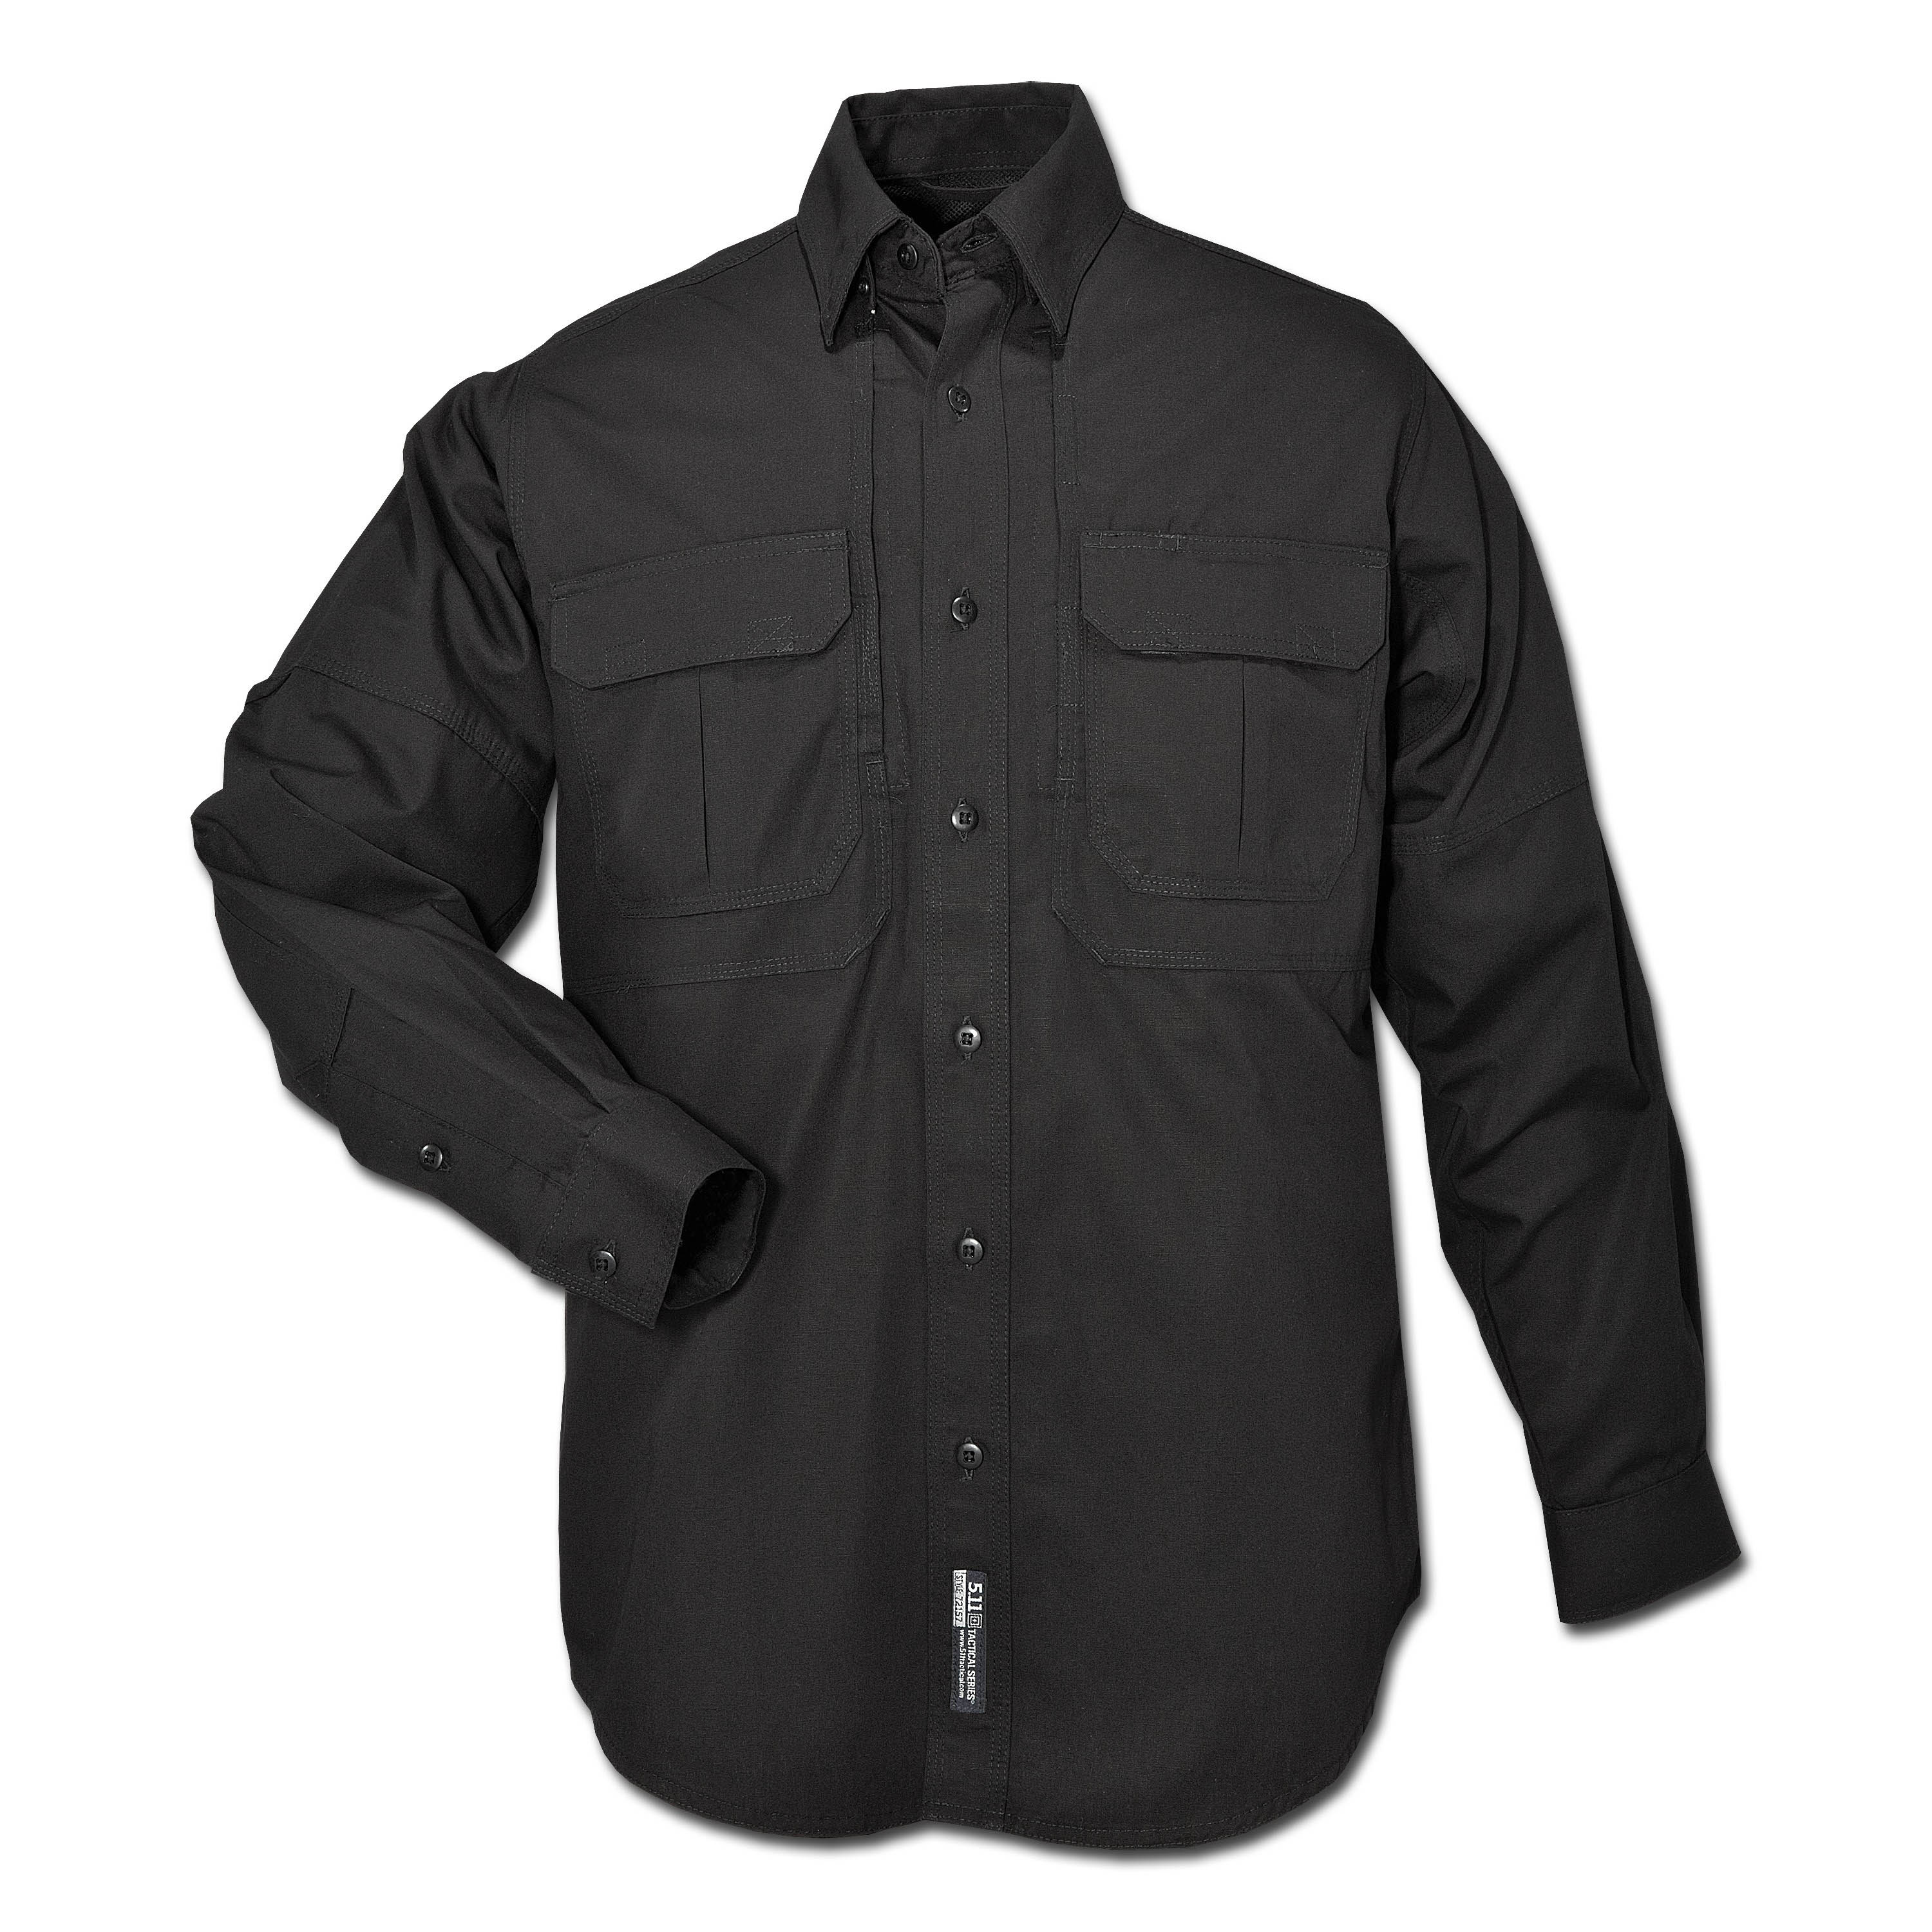 5.11 Tactical Shirt Langarm Cotton schwarz